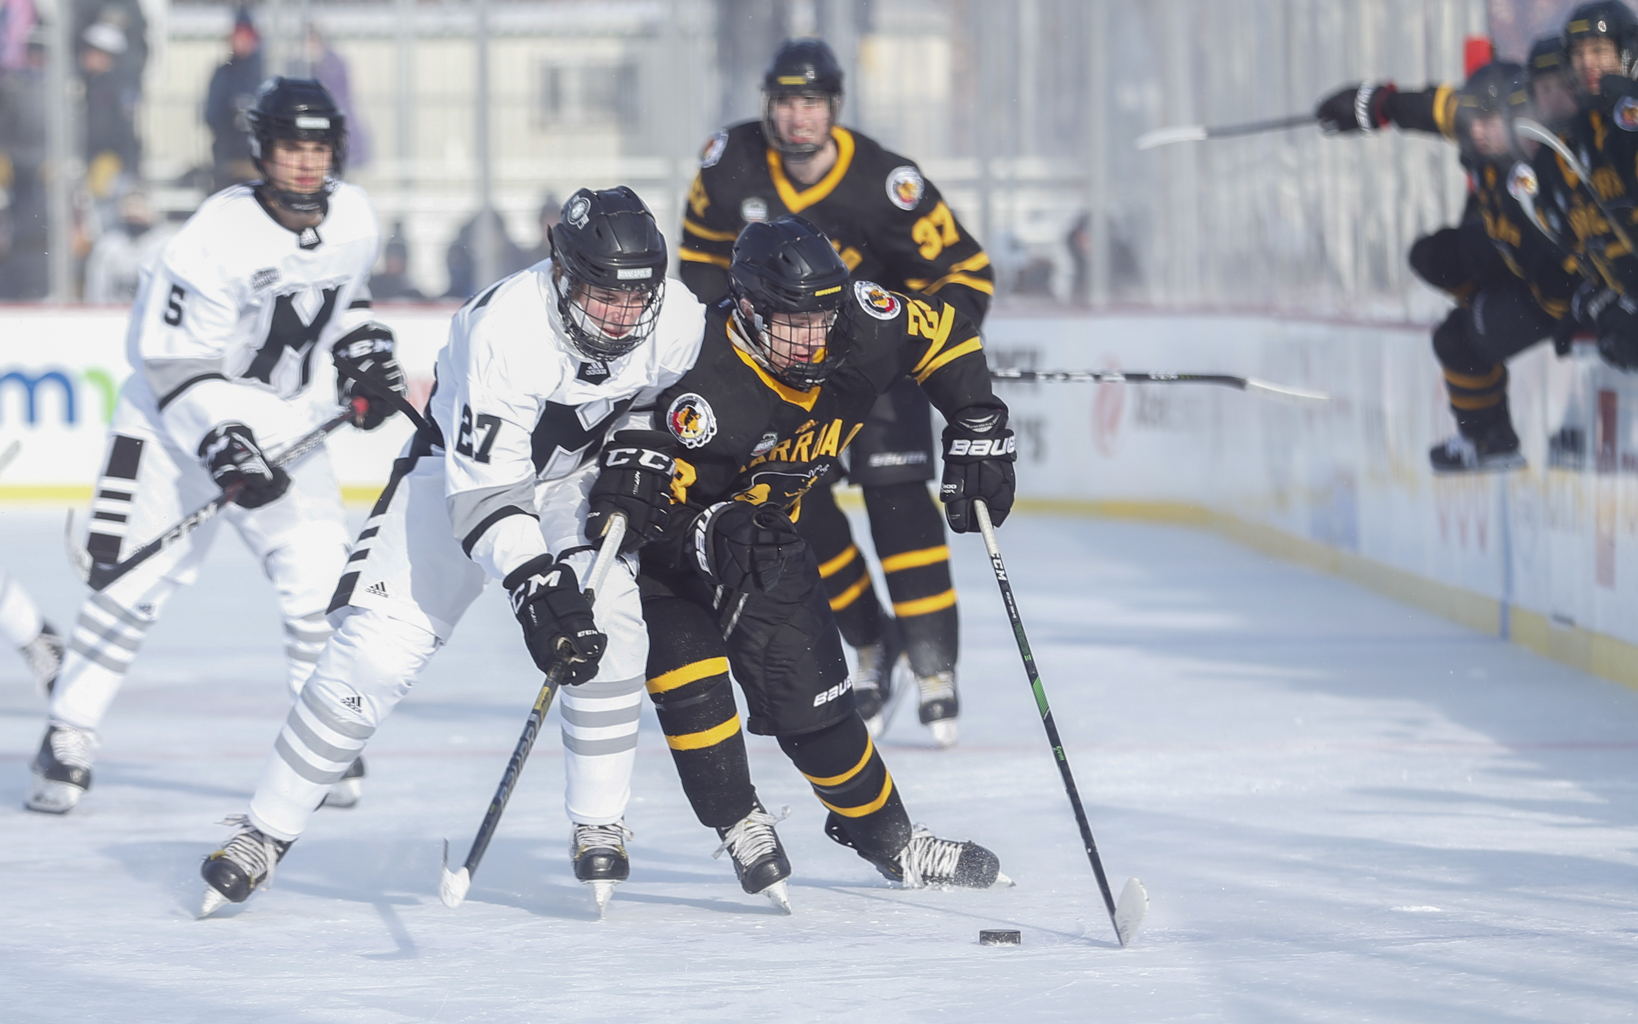 Warroad's Owen Meeker (23) tangles with Minneapolis' Evan Grimm (27) as he enters the offensive zone Saturday morning. Meeker had two goals and an assist in the Warriors' 5-1 victory over Minneapolis at Parade Stadium. Photo by Jeff Lawler, SportsEngine